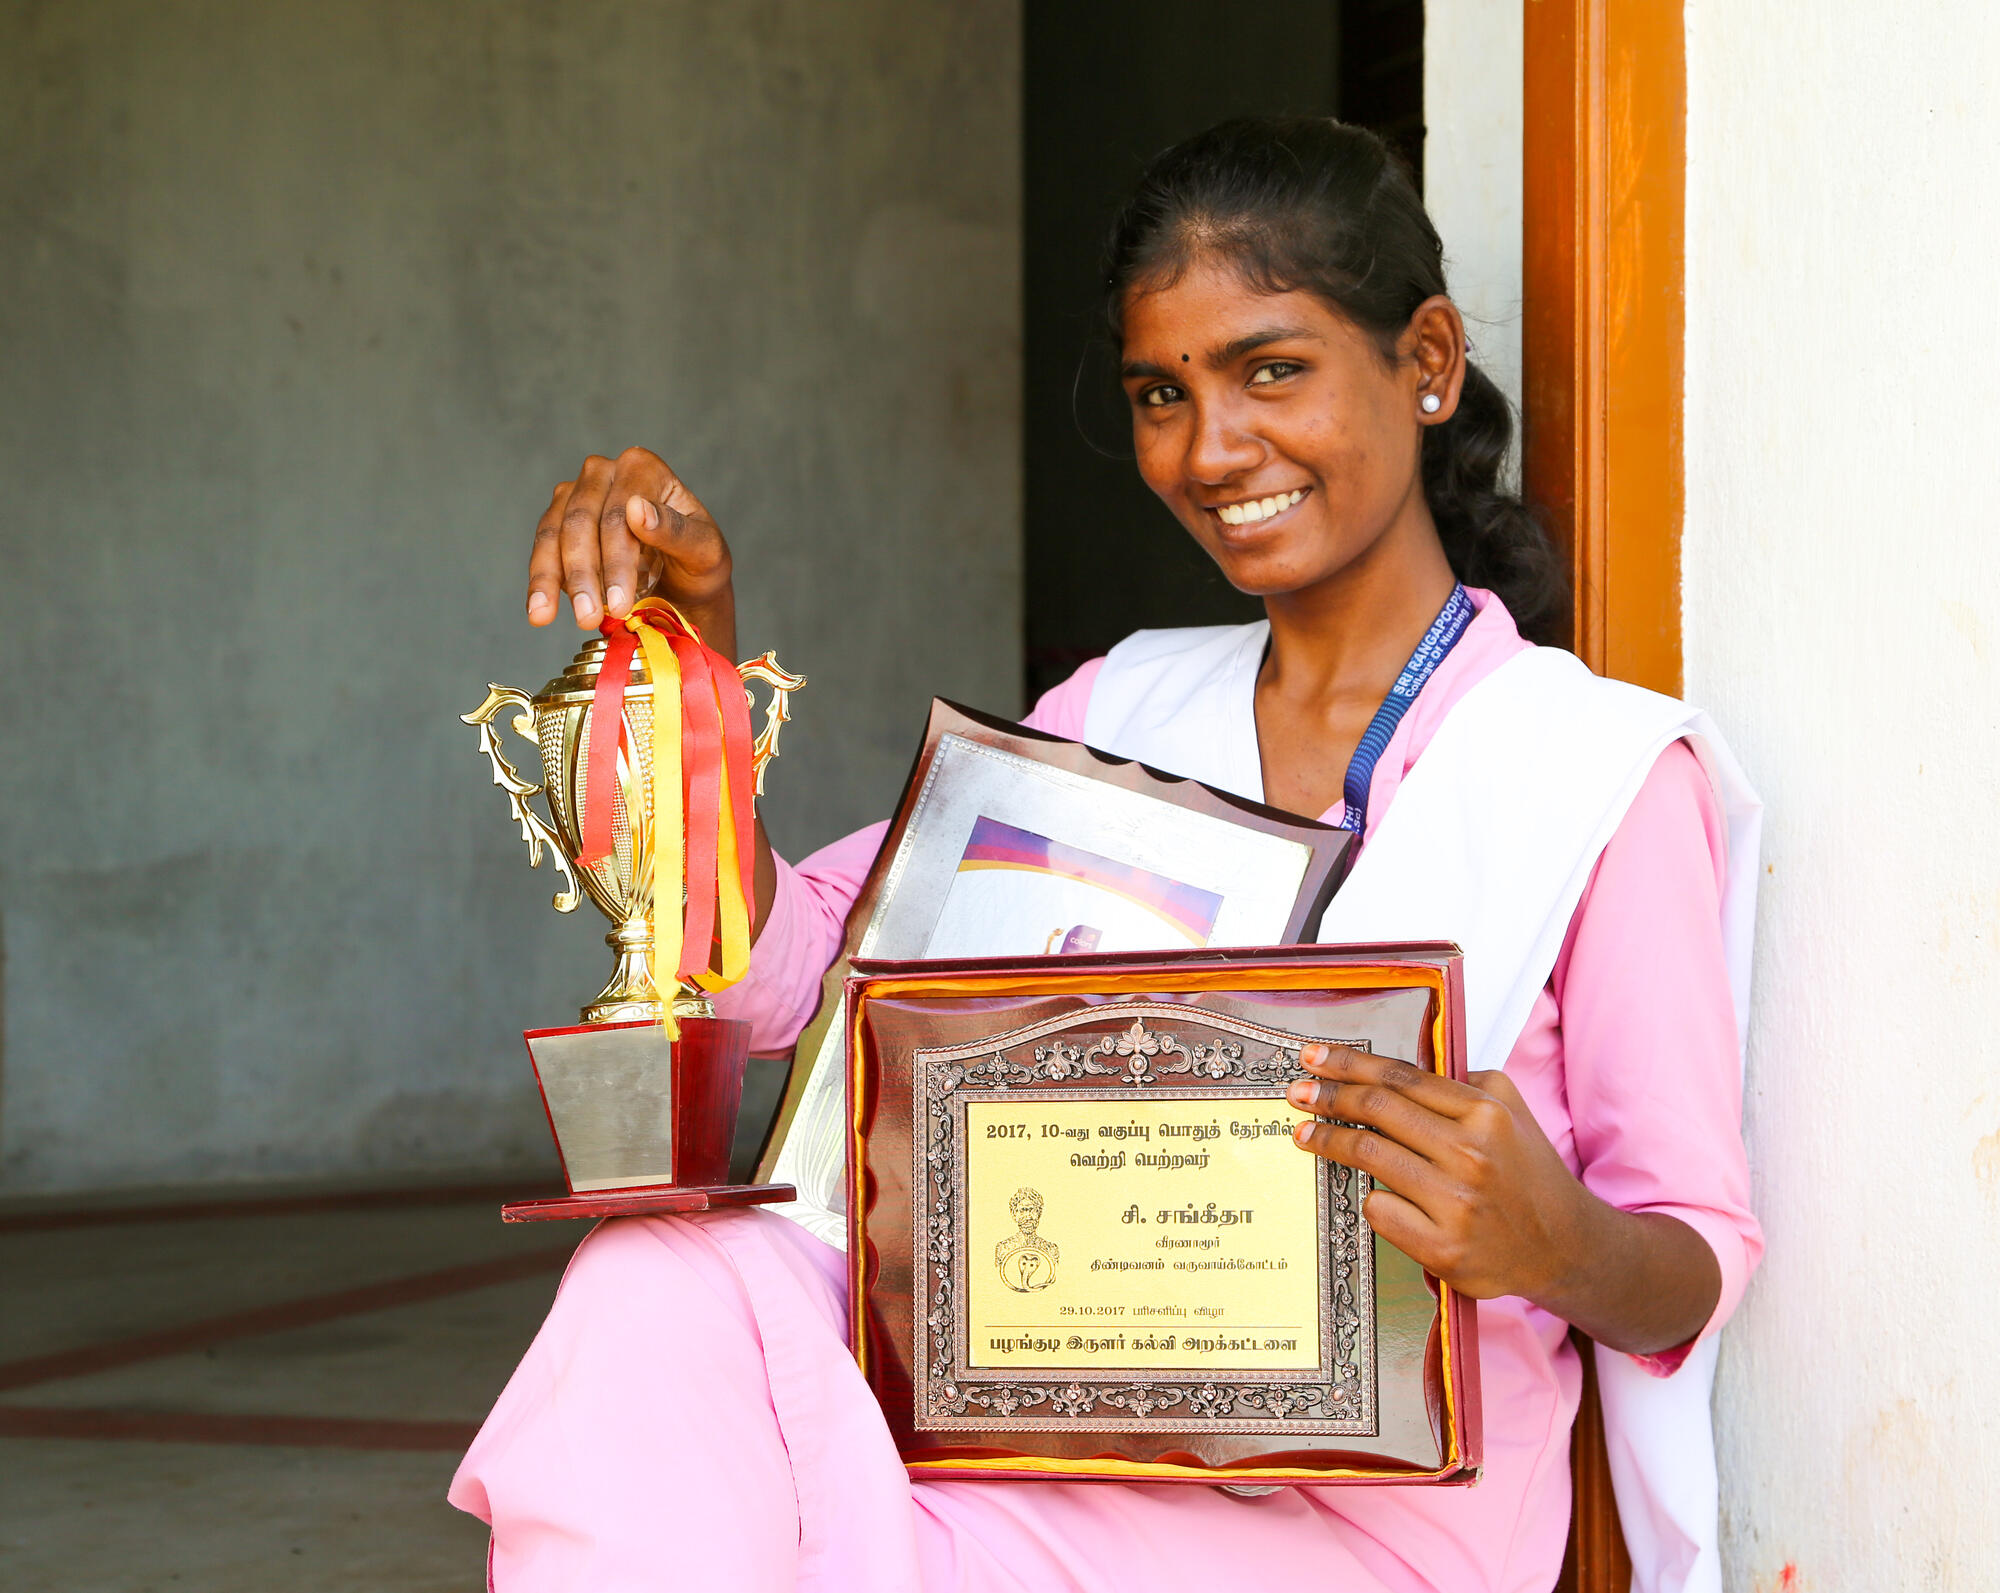 Sangeetha's journey to be the first graduate of her Village